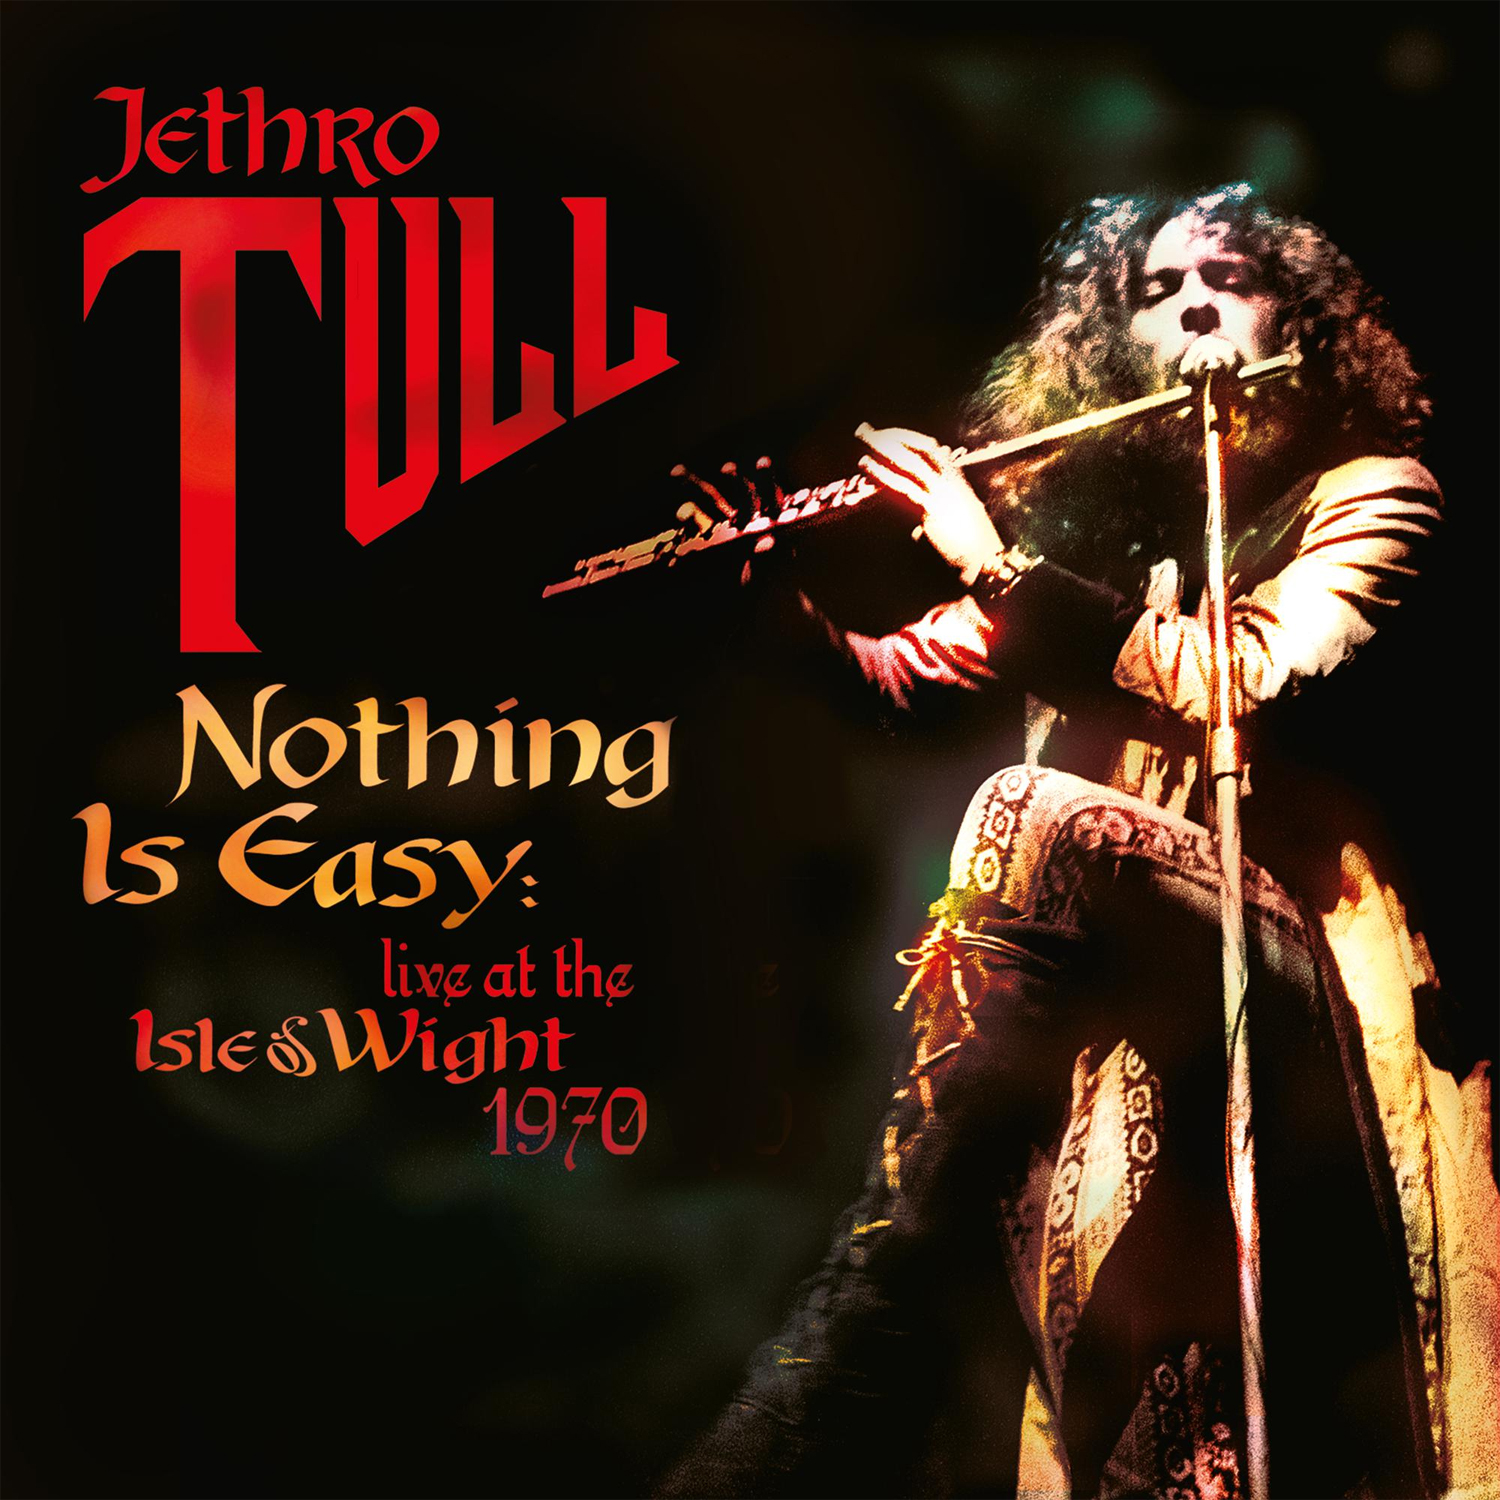 Jethro Tull Nothing Is Easy: Live At The Isle Of Wight 1970 Hand-Numbered Limited Edition 180g 2LP (Orange Vinyl)